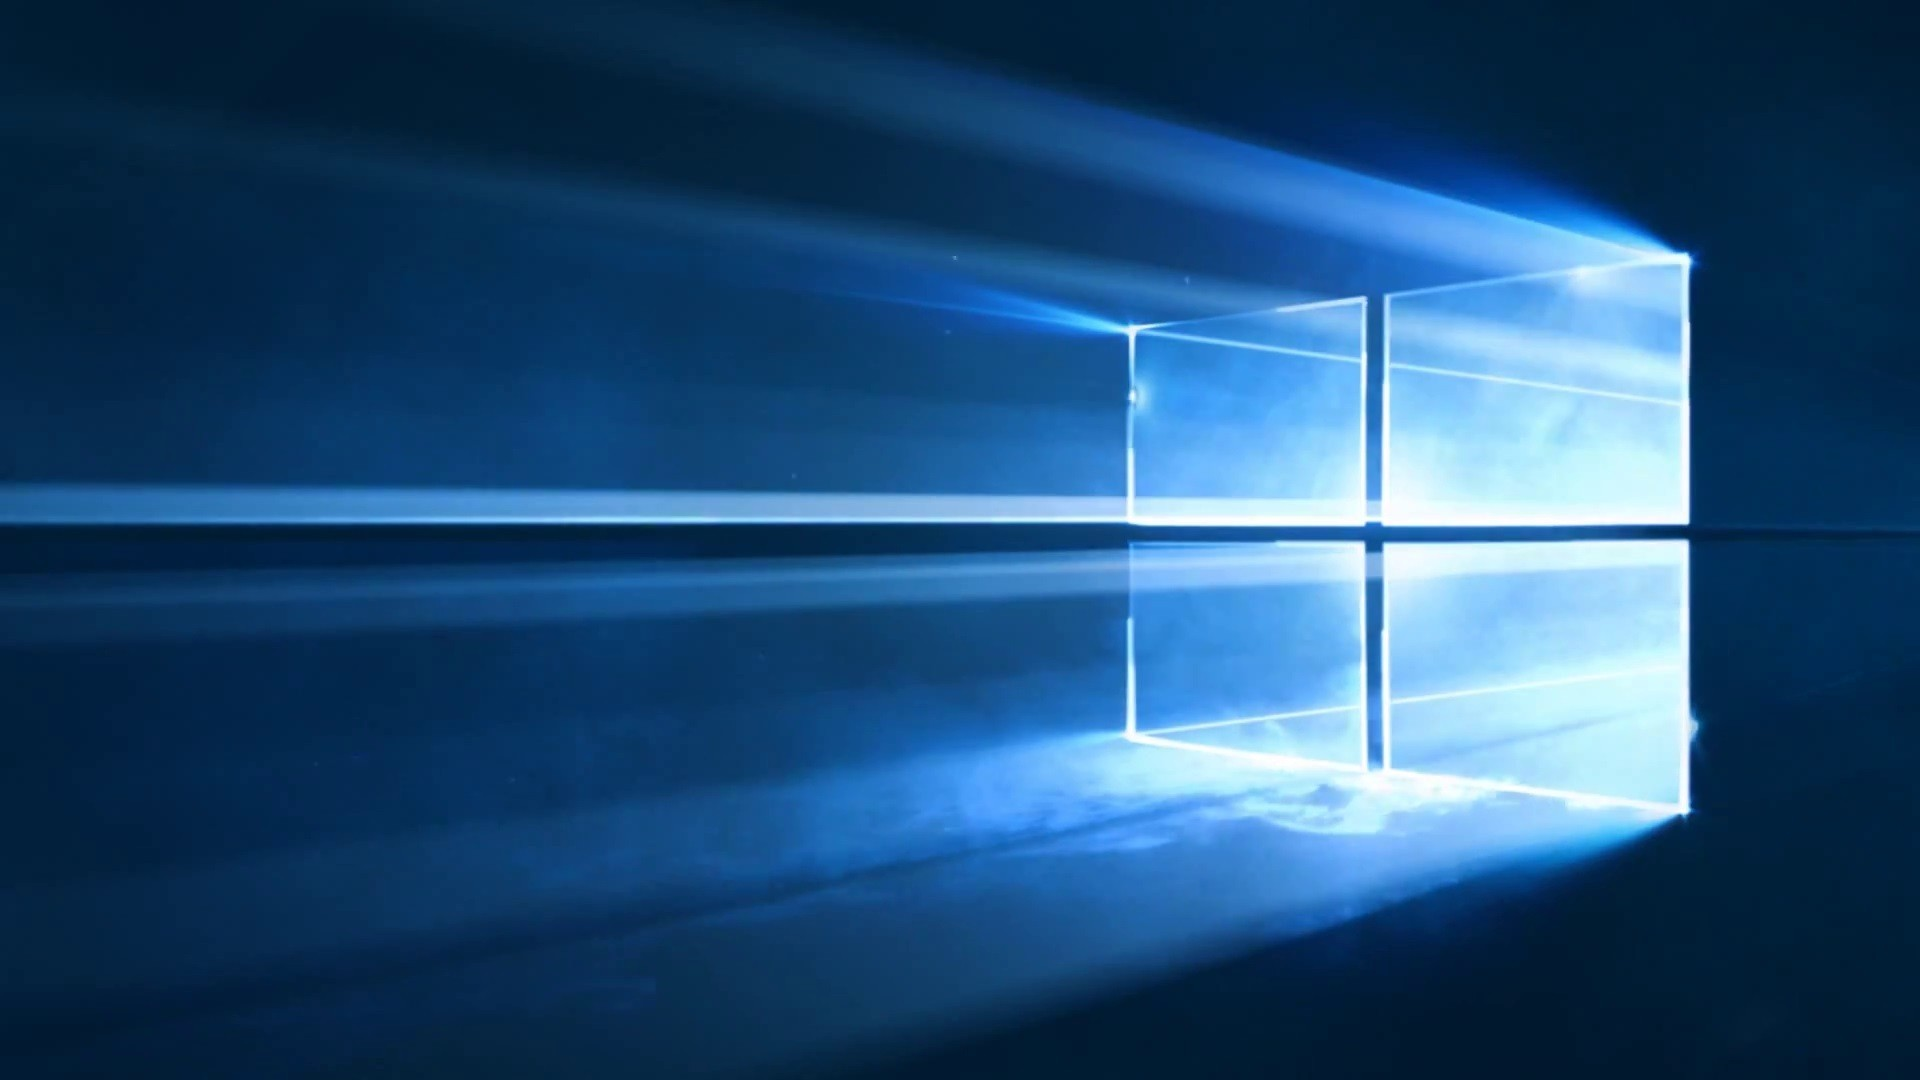 Group Of Windows 10 Hd Wallpaper Widescreen 1920x1080